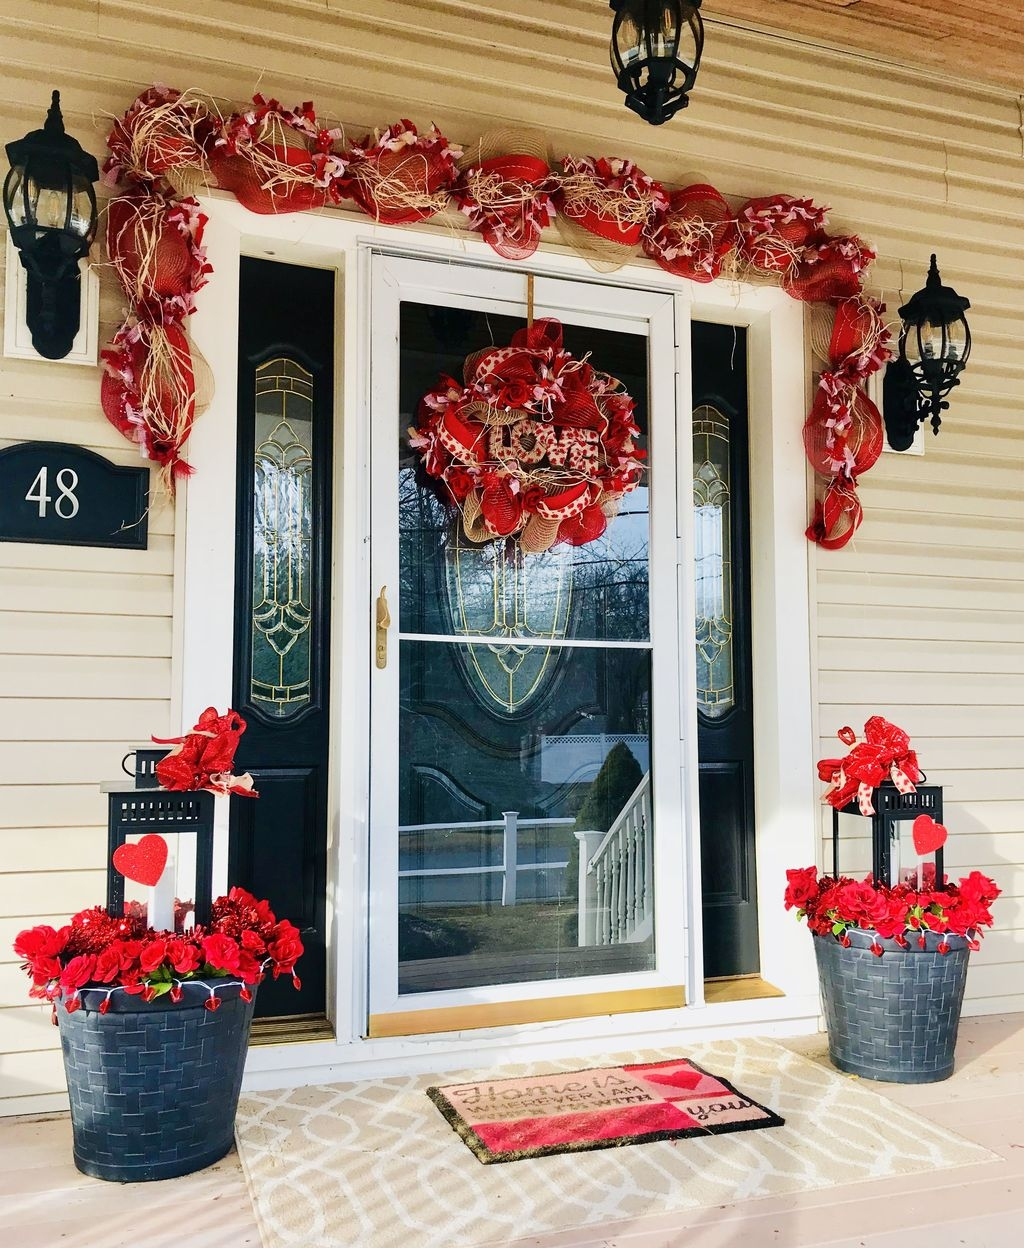 Stunning Valentines Day Front Porch Decor Ideas 15 - PIMPHOMEE